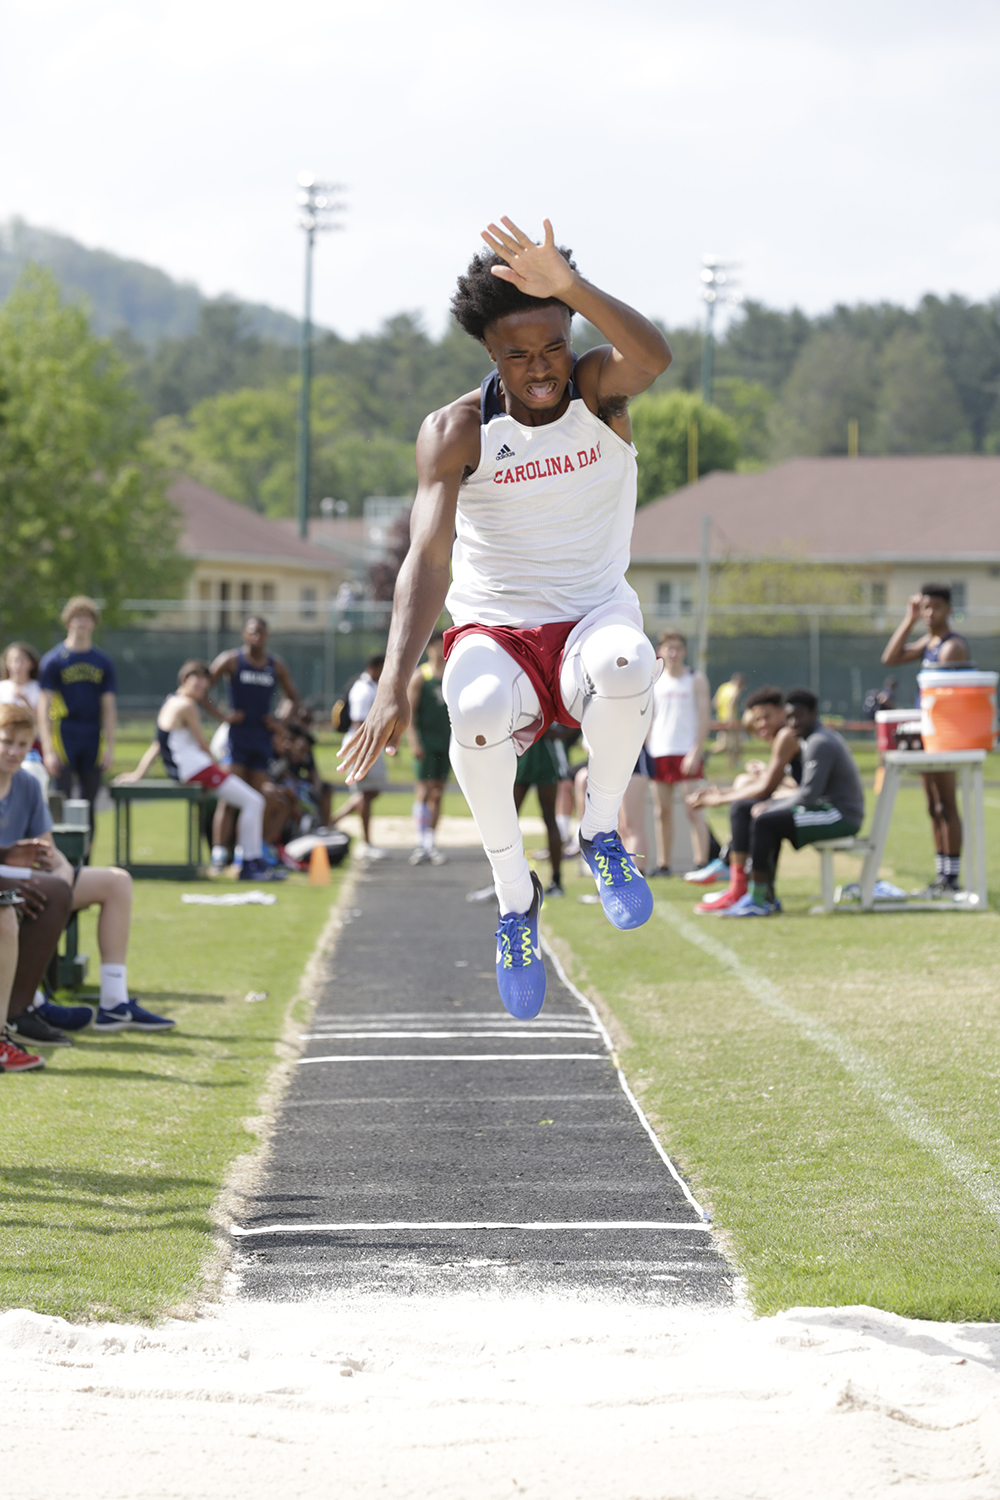 Carolina Day School Rising Senior Lee Langstaff Named an NCISAA Track and Field Athlete of the Year